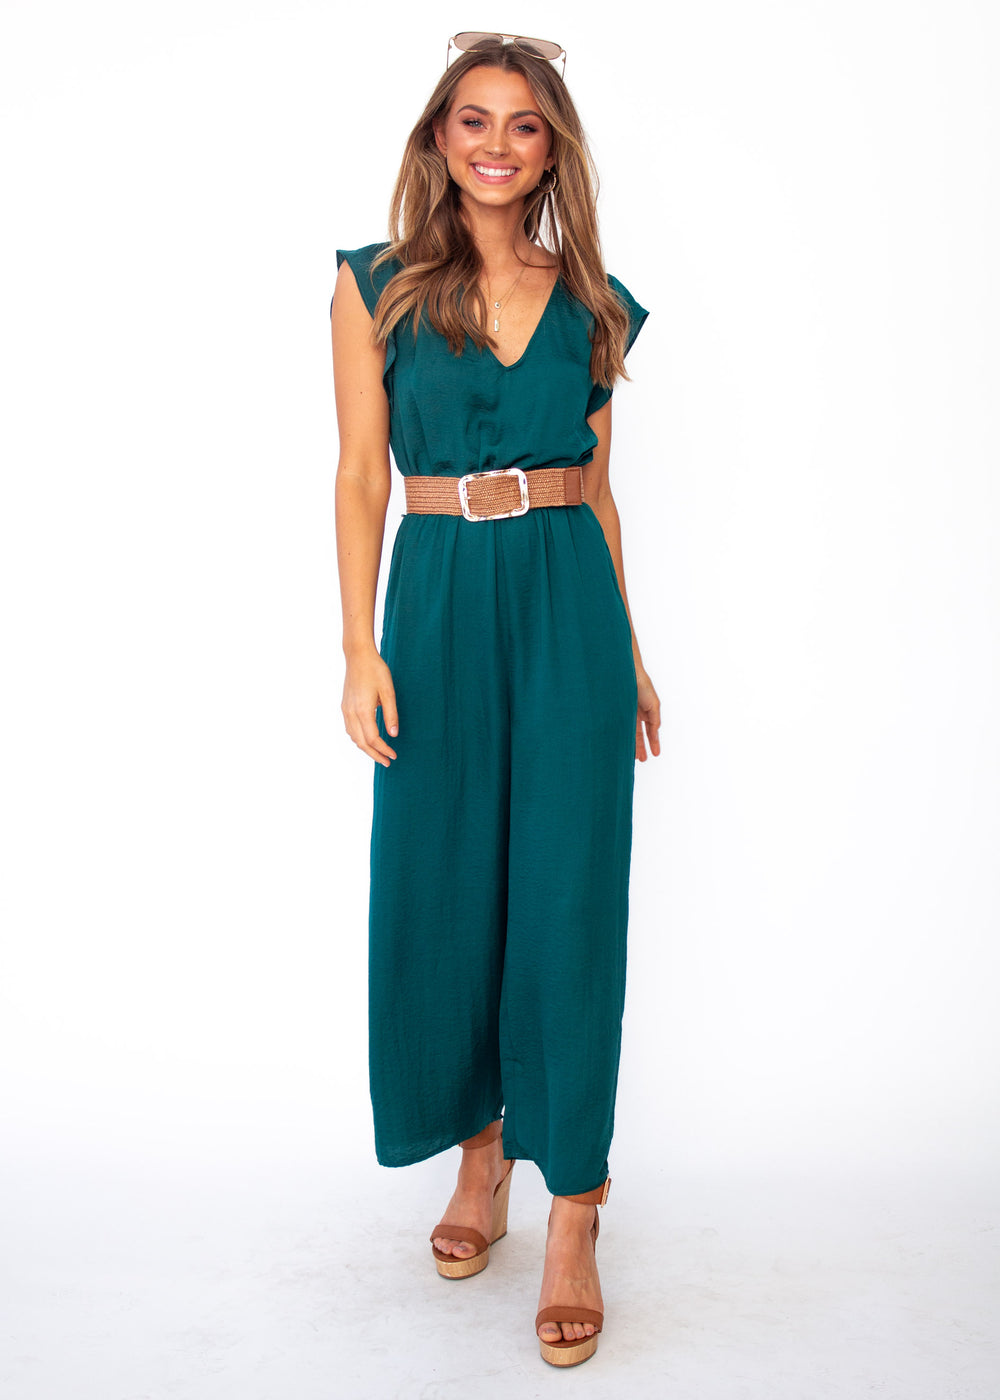 Women's At Last Pantsuit - Emerald